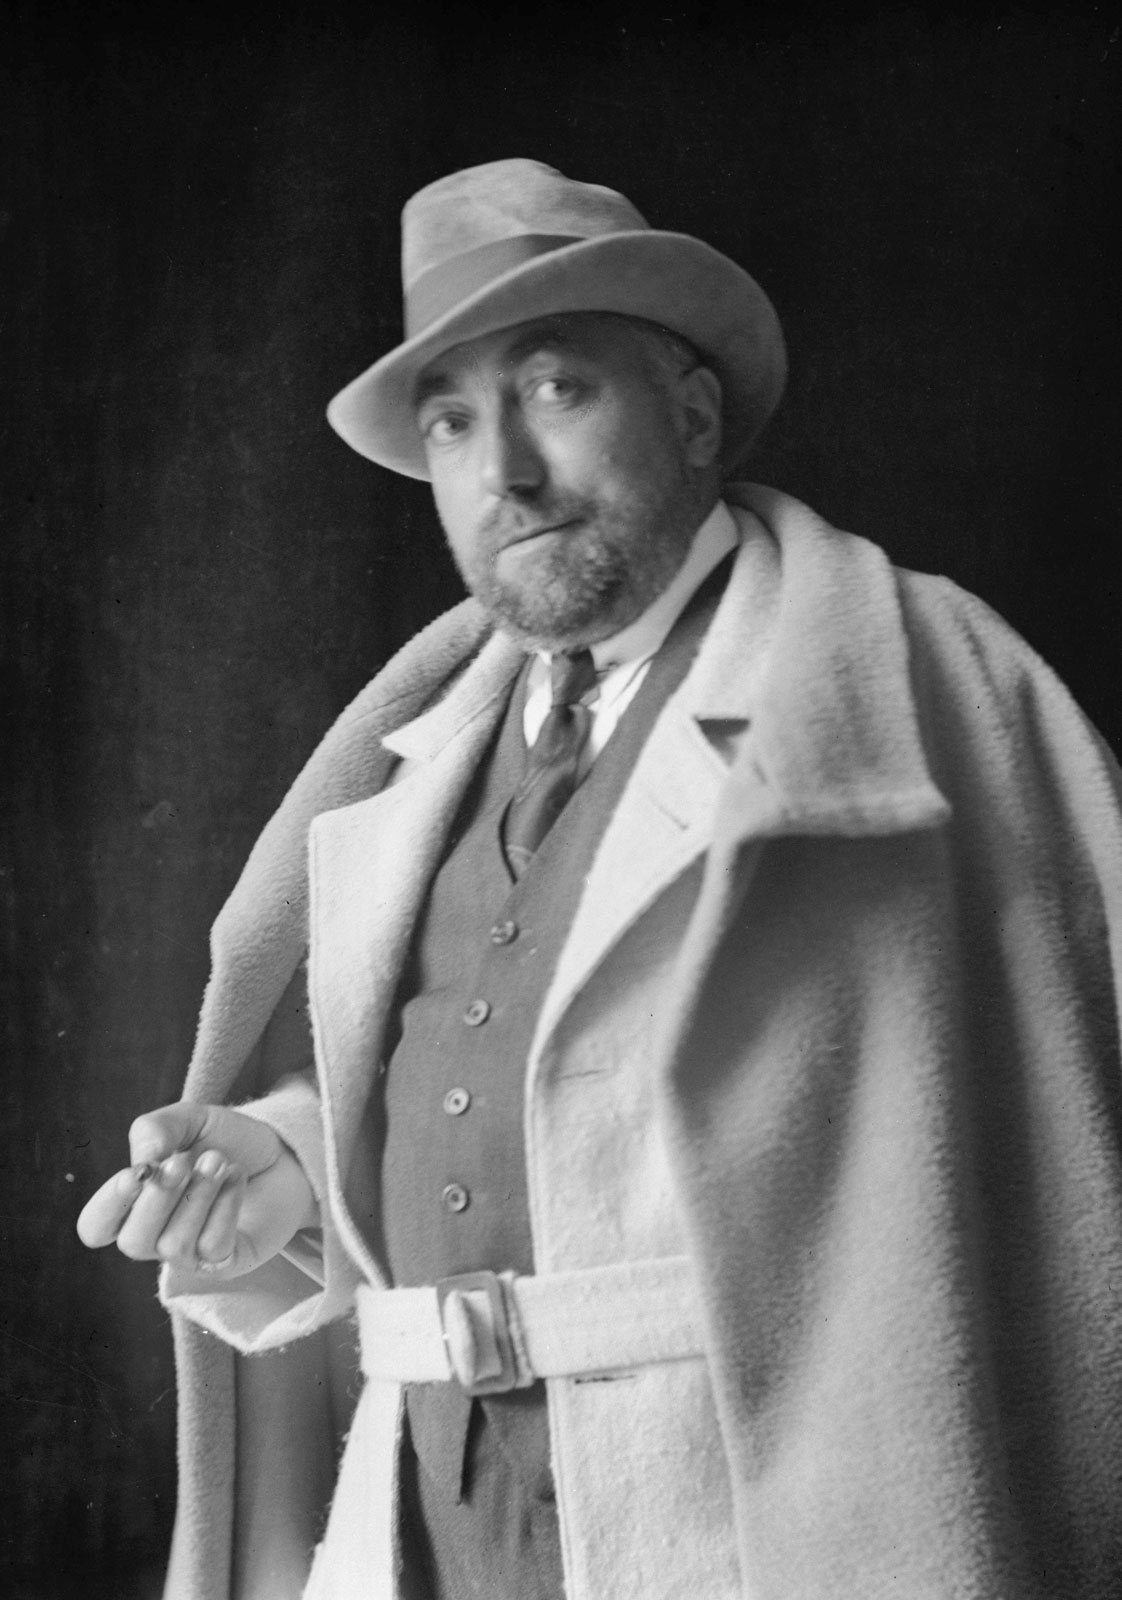 7a582672e534d8 Sun's on the cusp of Aries/Taurus, and here's an arty character who was  born with Sun at 00 Taurus, on 20 April 1879: Paul Poiret, one of the early  1900s' ...